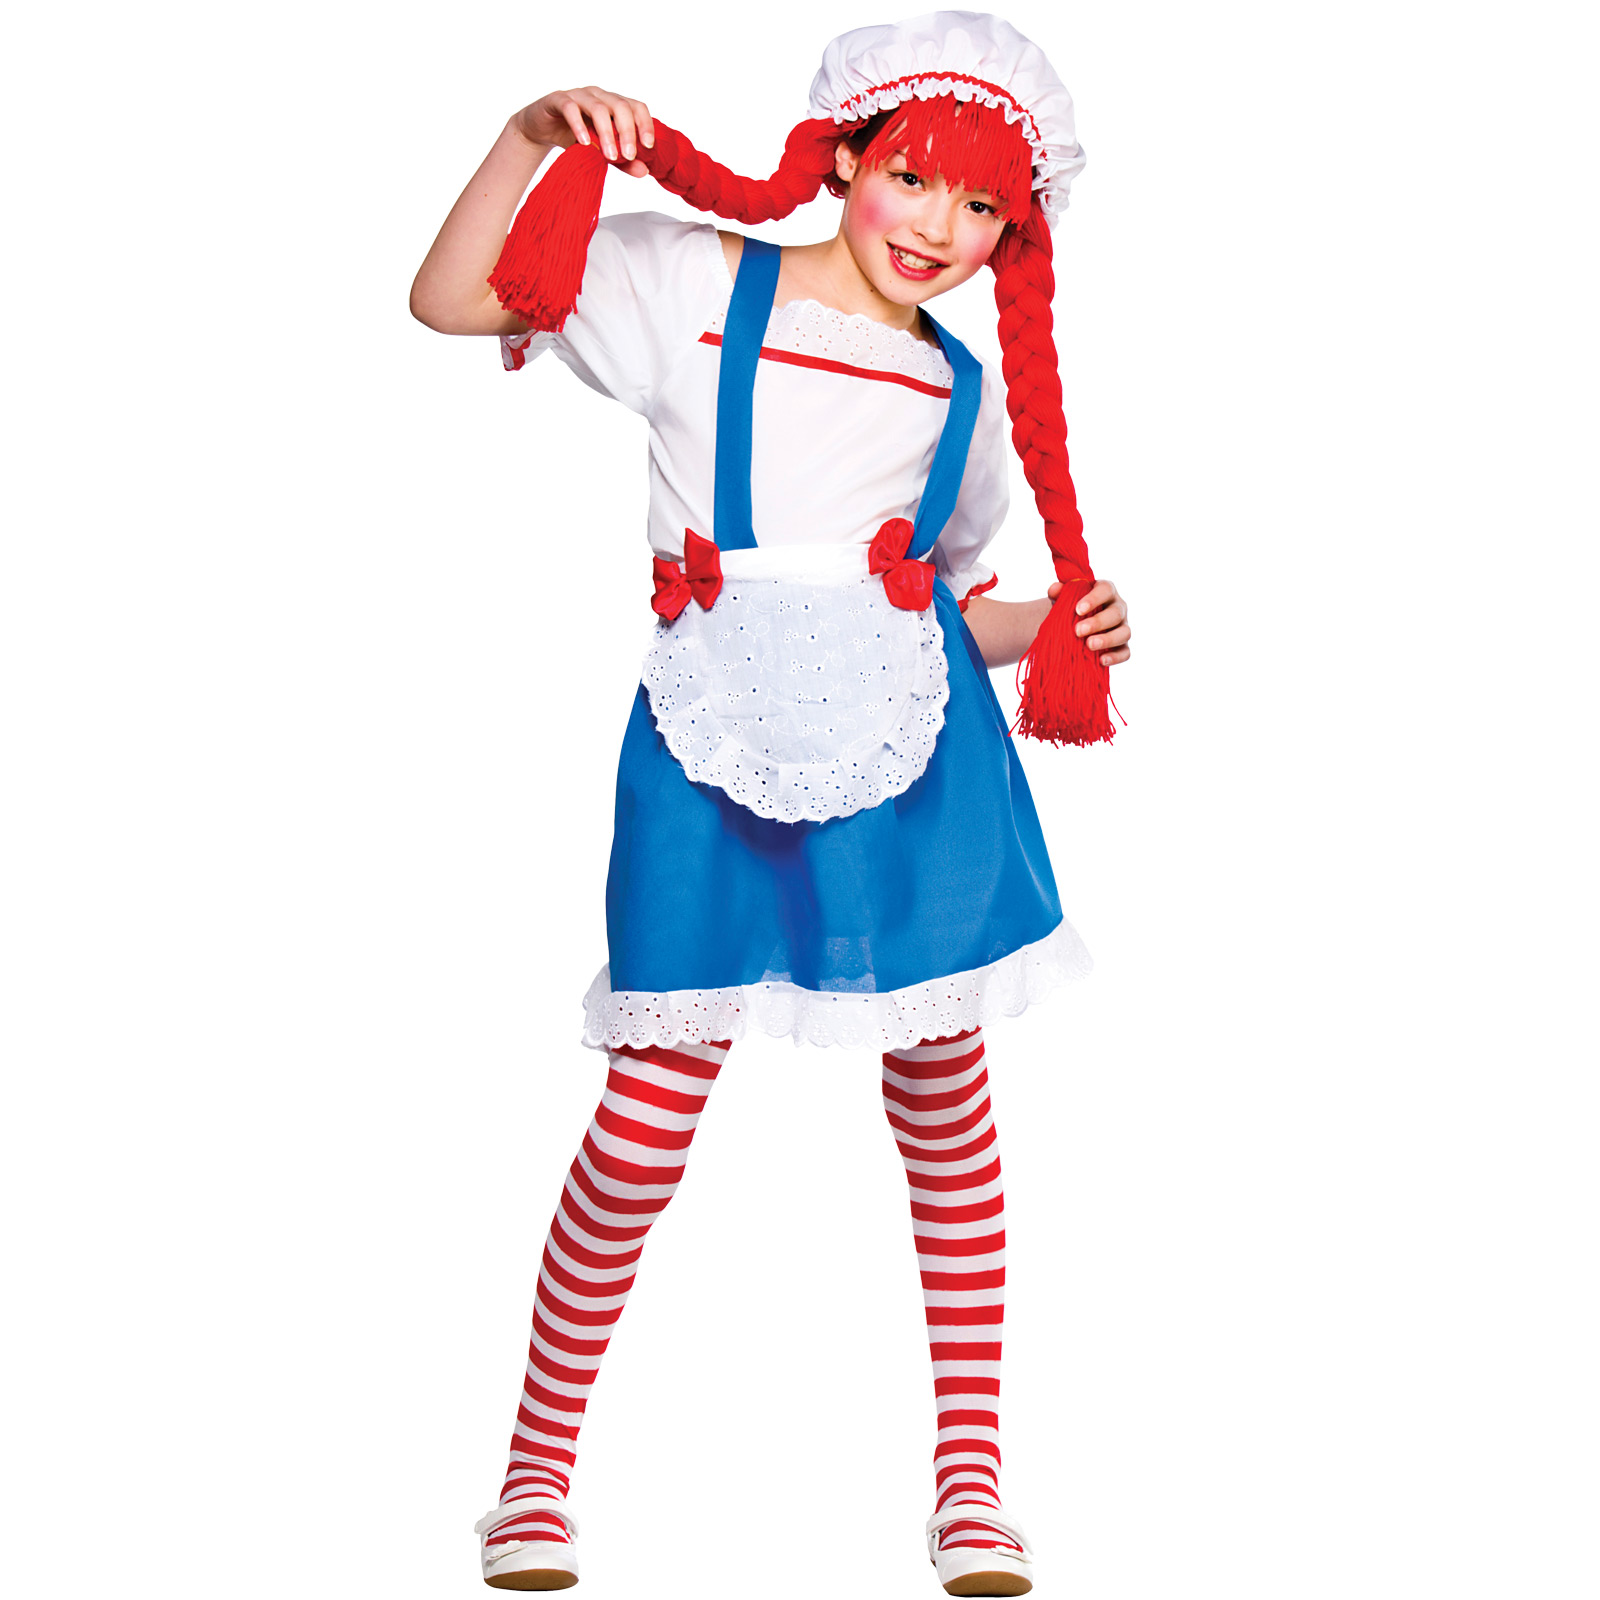 Girl Dressed up as a Boy Costume Costume-fancy-dress-up